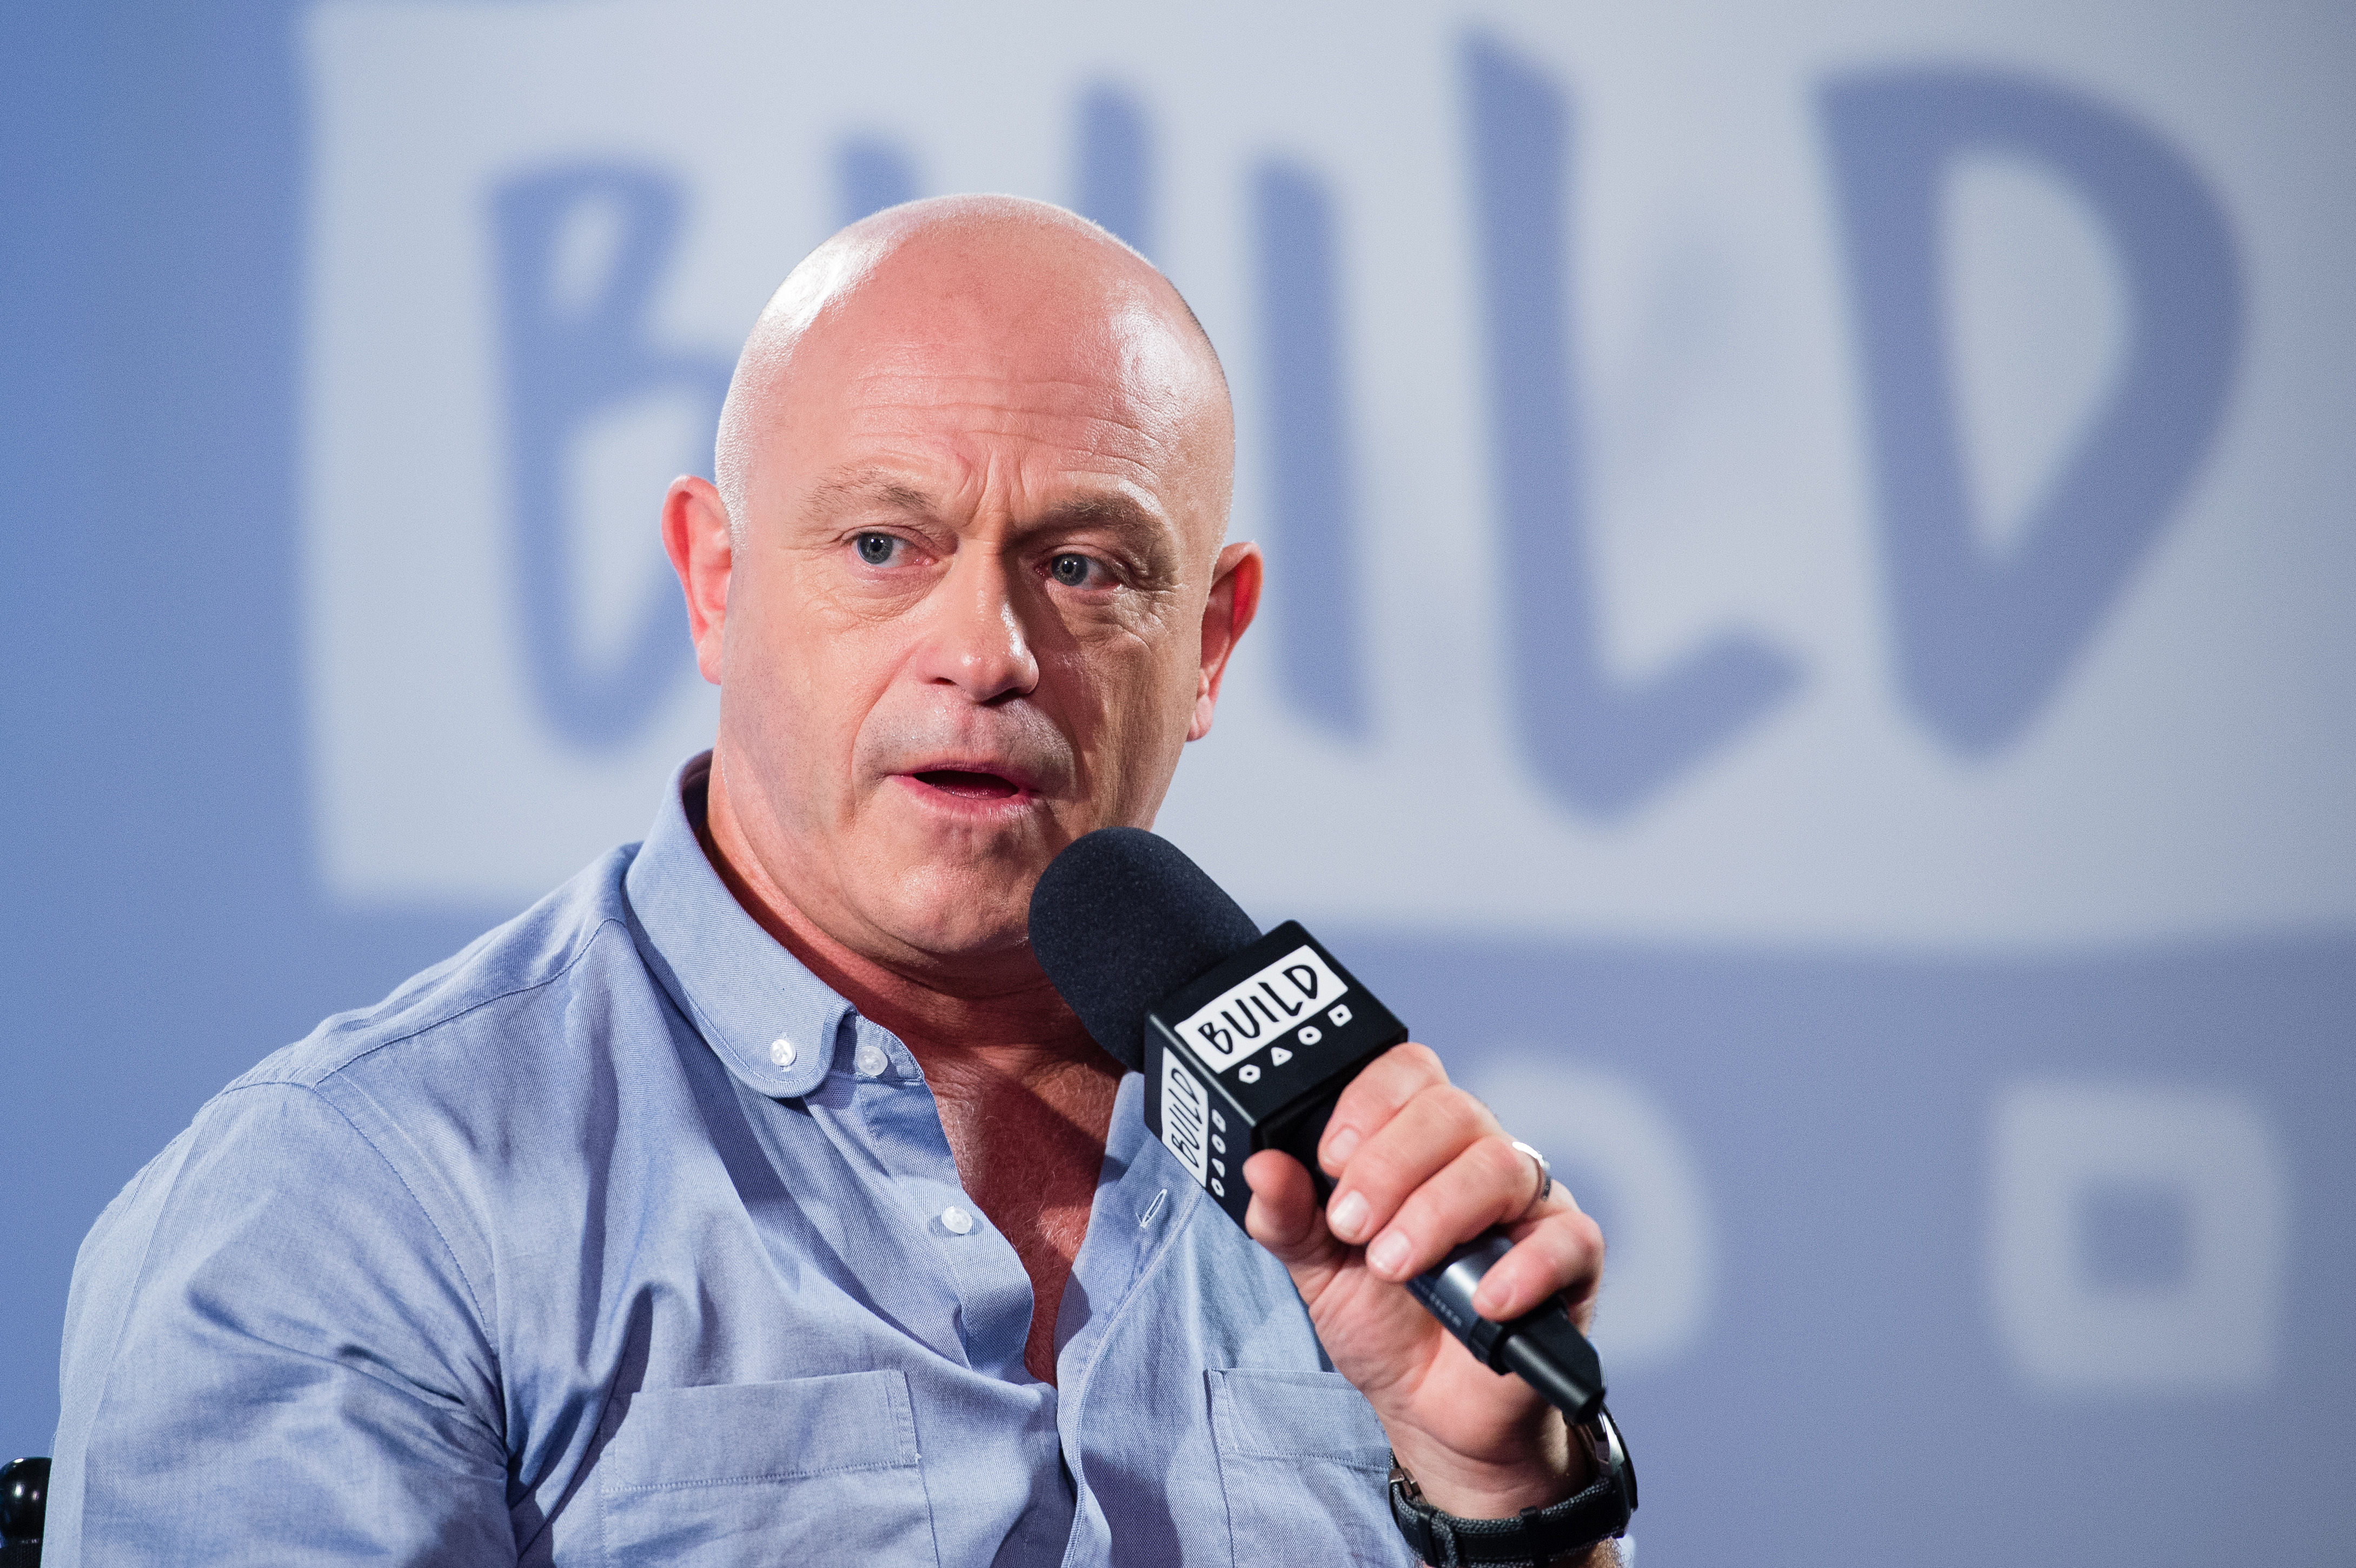 LONDON, ENGLAND - JULY 13:  Ross Kemp speaks during a BUILD event at AOL London on July 13, 2017 in London, England.  (Photo by Jeff Spicer/Getty Images)